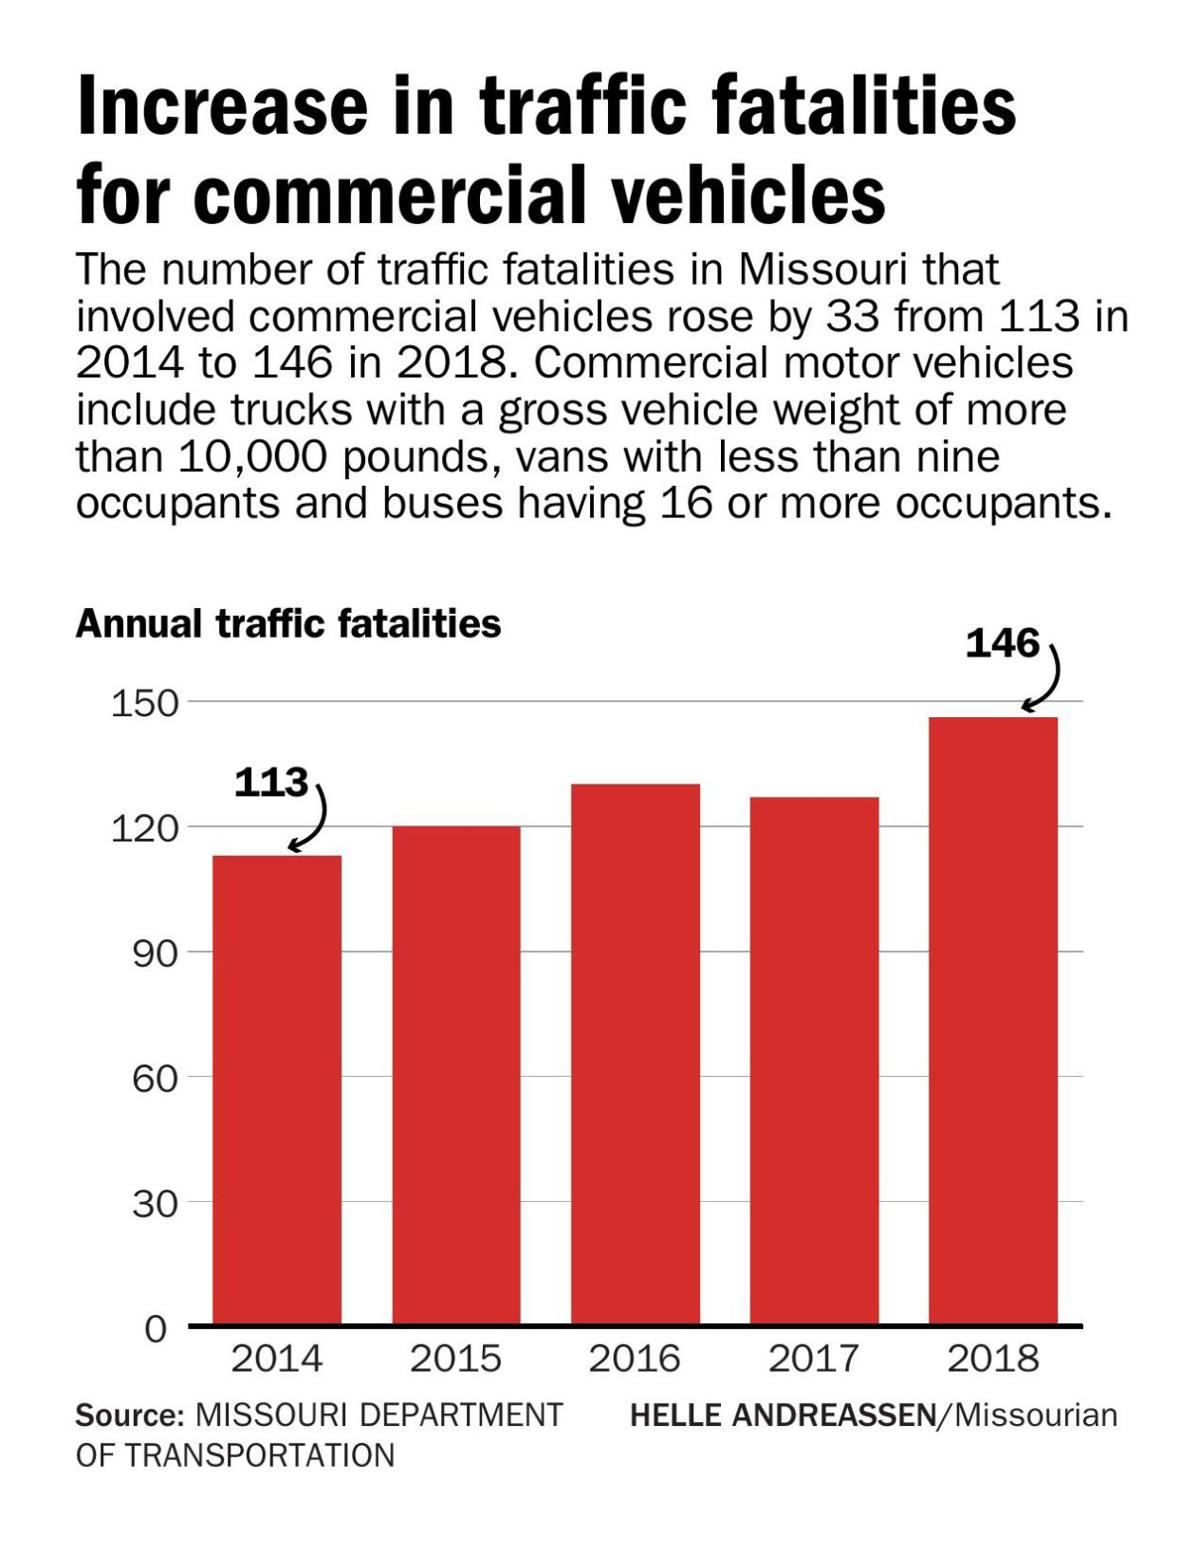 Increase in traffic fatalities for commercial vehicles